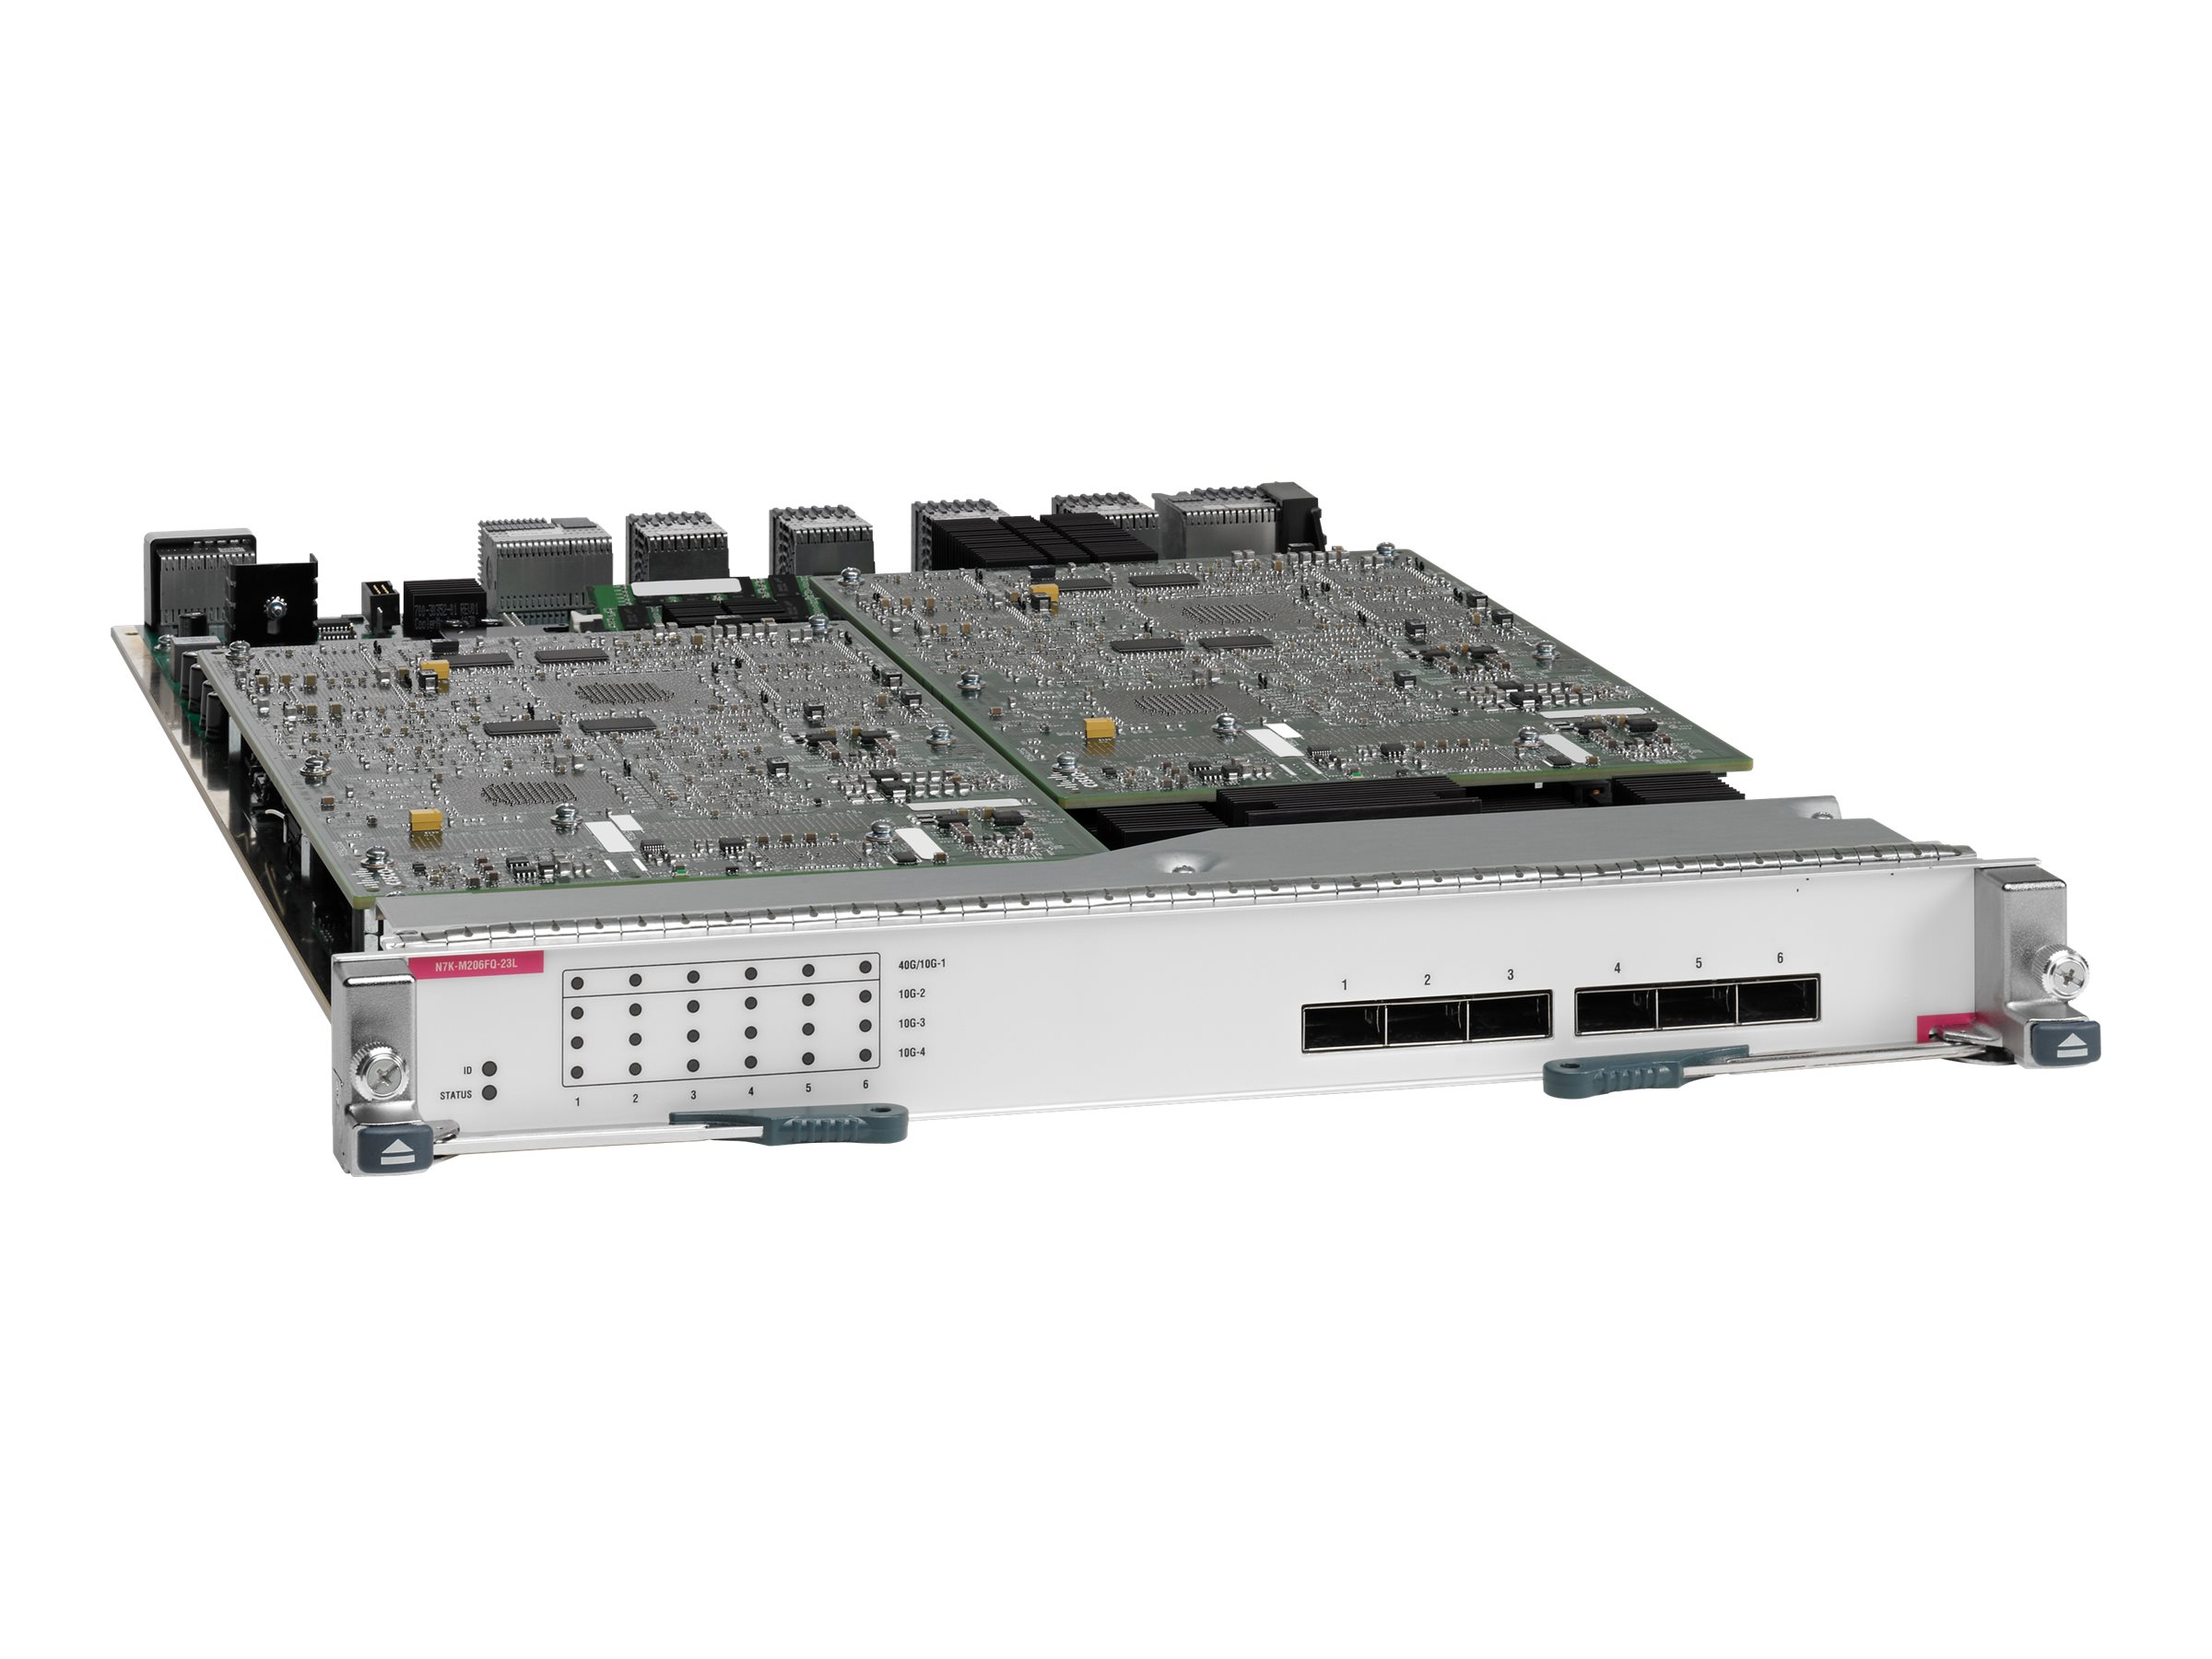 Cisco Nexus 7000 M2-Series 6 Port 40 GbE with XL Option - Switch - 6 x 40 Gigabit QSFP+ - Plugin-Modul